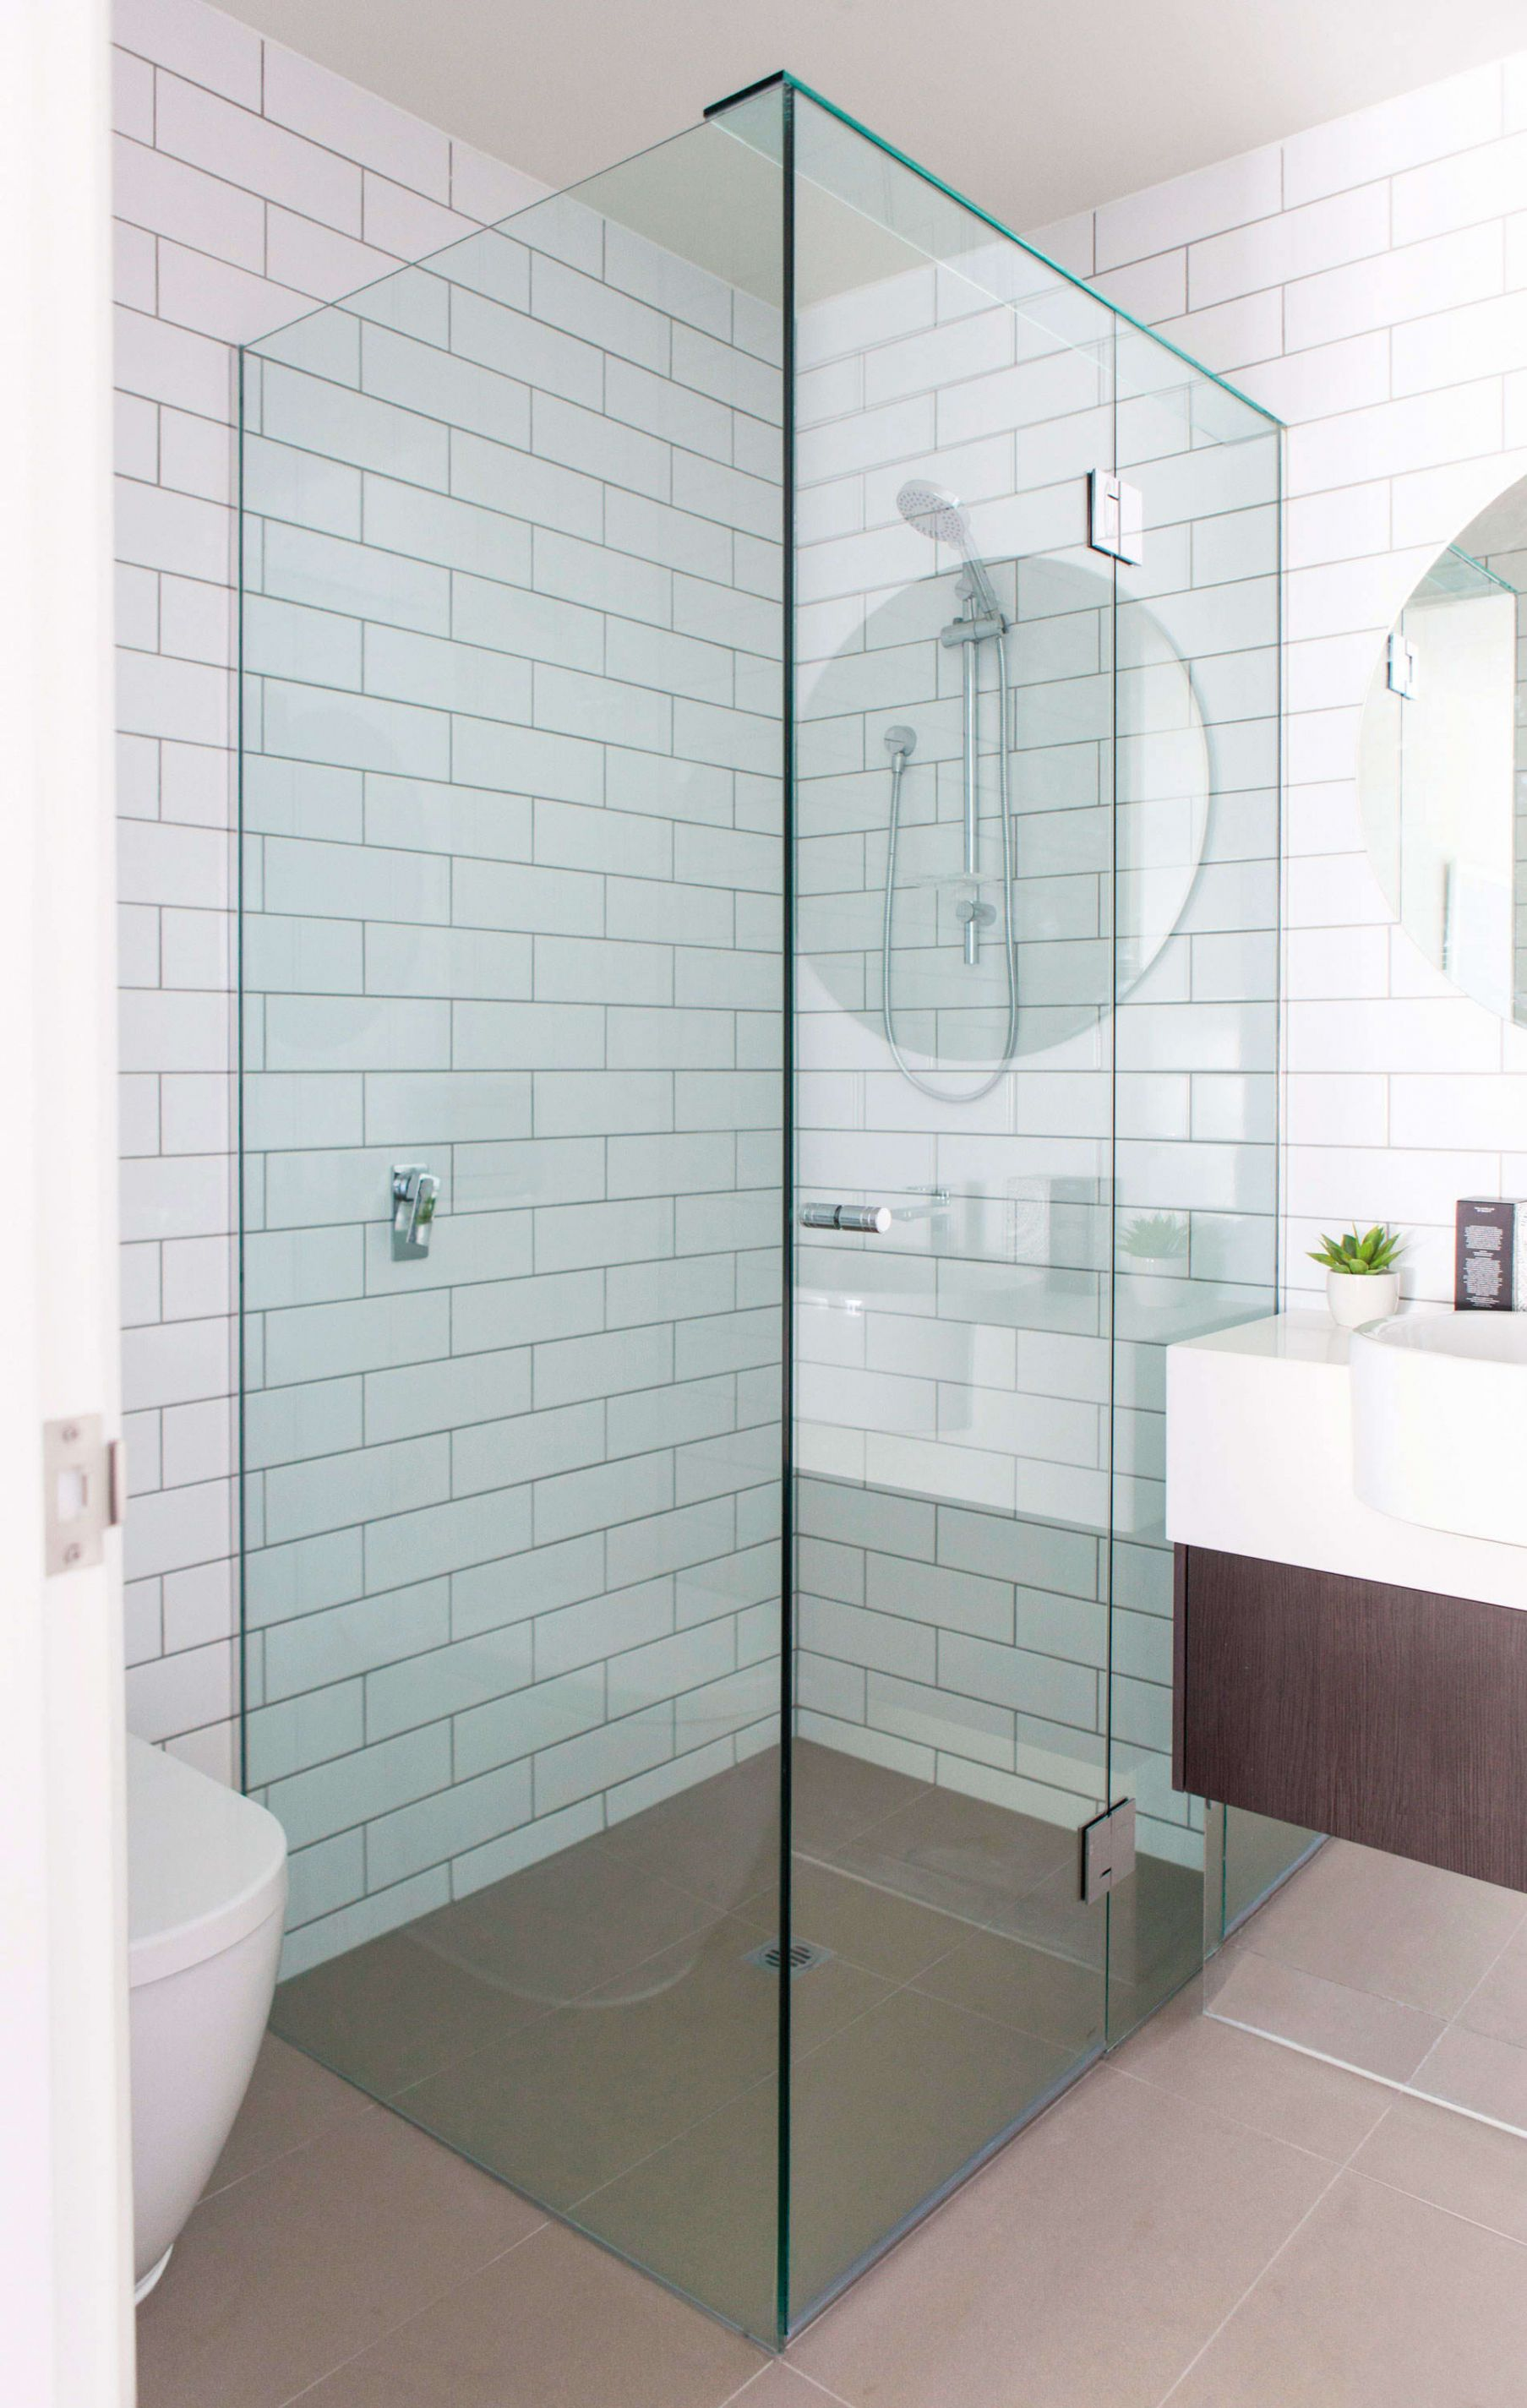 Romantic shower design - 25 Ultimate Dreamy Romantic Bathroom Shower Screen Design